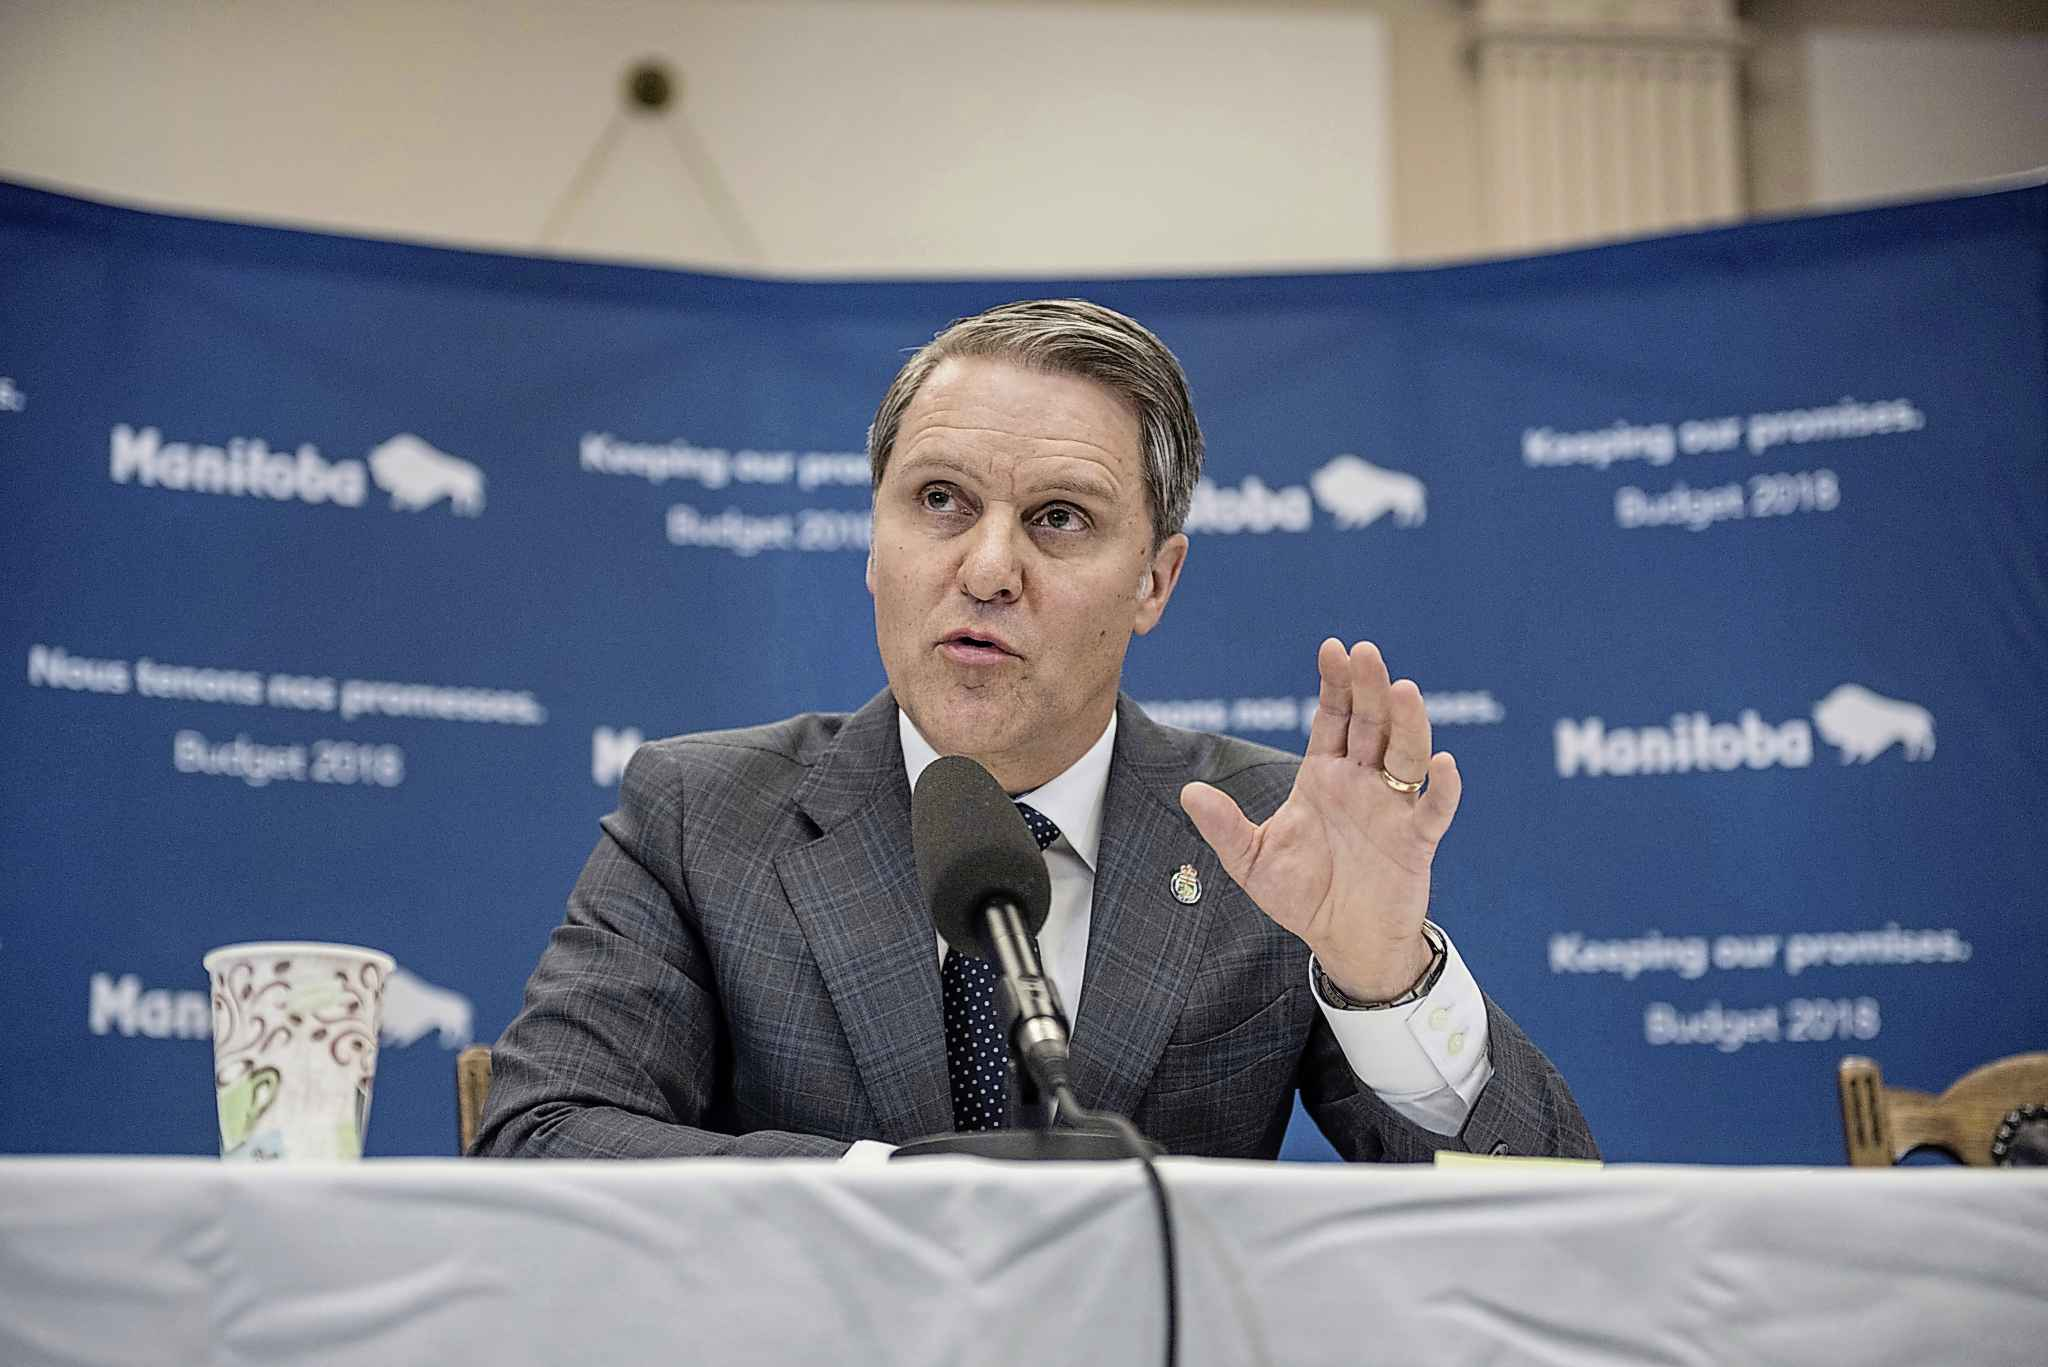 Manitoba Health Minister Cameron Friesen said Monday 'better processes' have since been established to ensure staff concerns are dealt with properly. (David Lipnowski / The Canadian Press files)